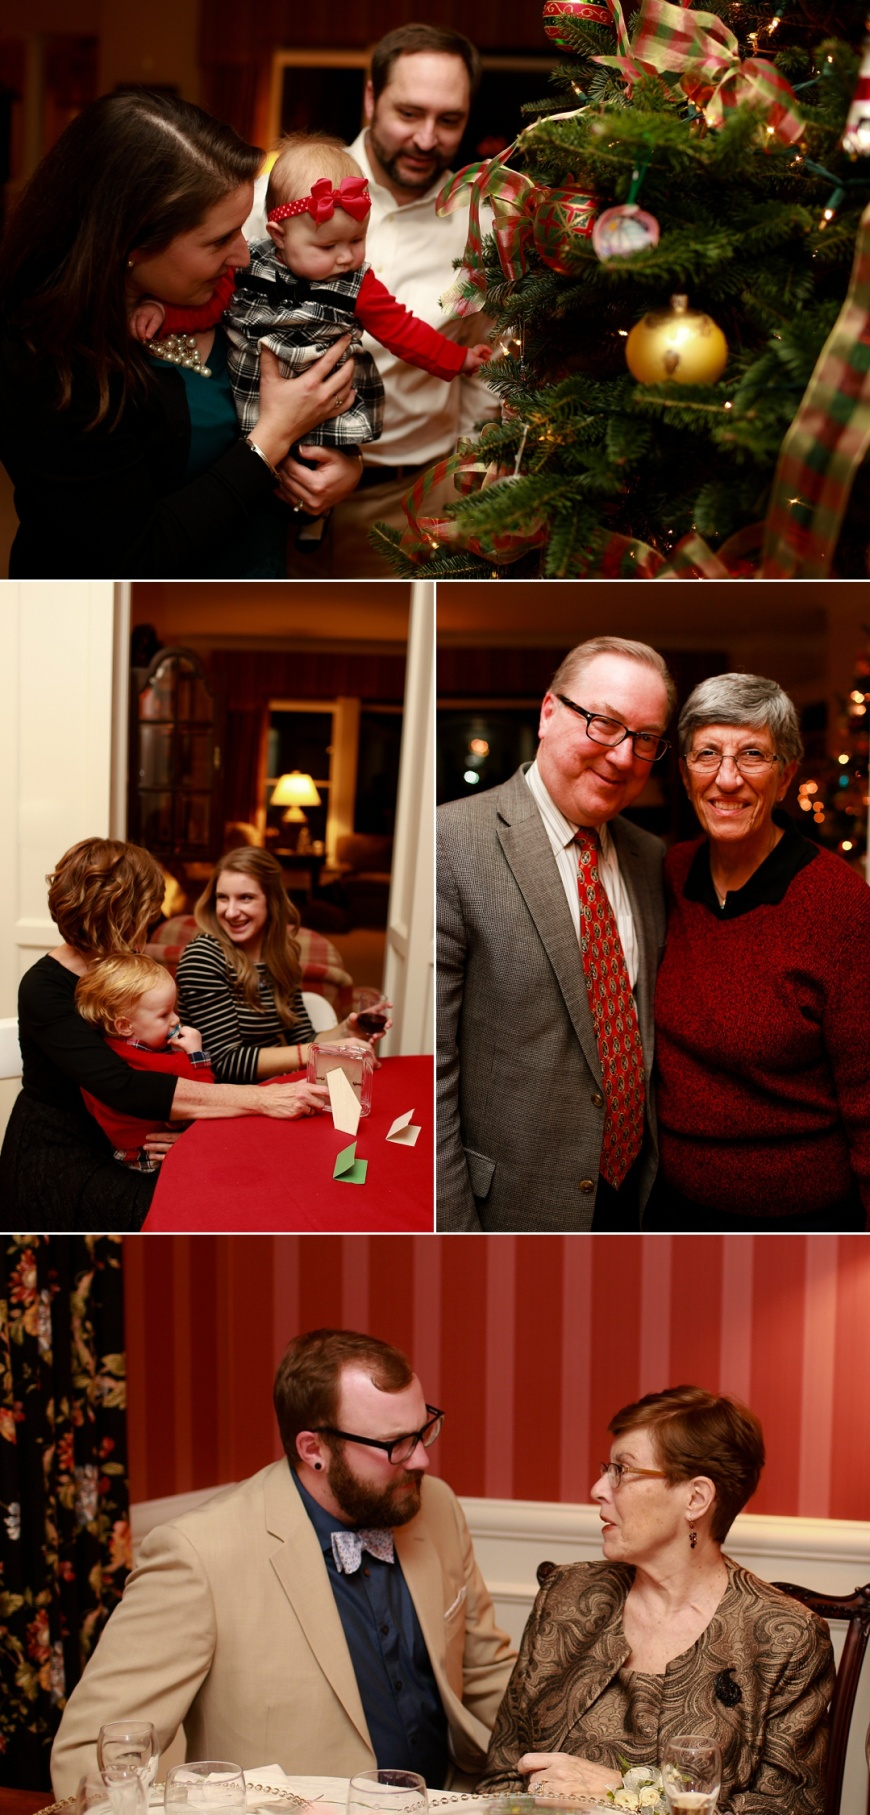 Kalamazoo-Winter-Wedding-Photographer_1080.jpg